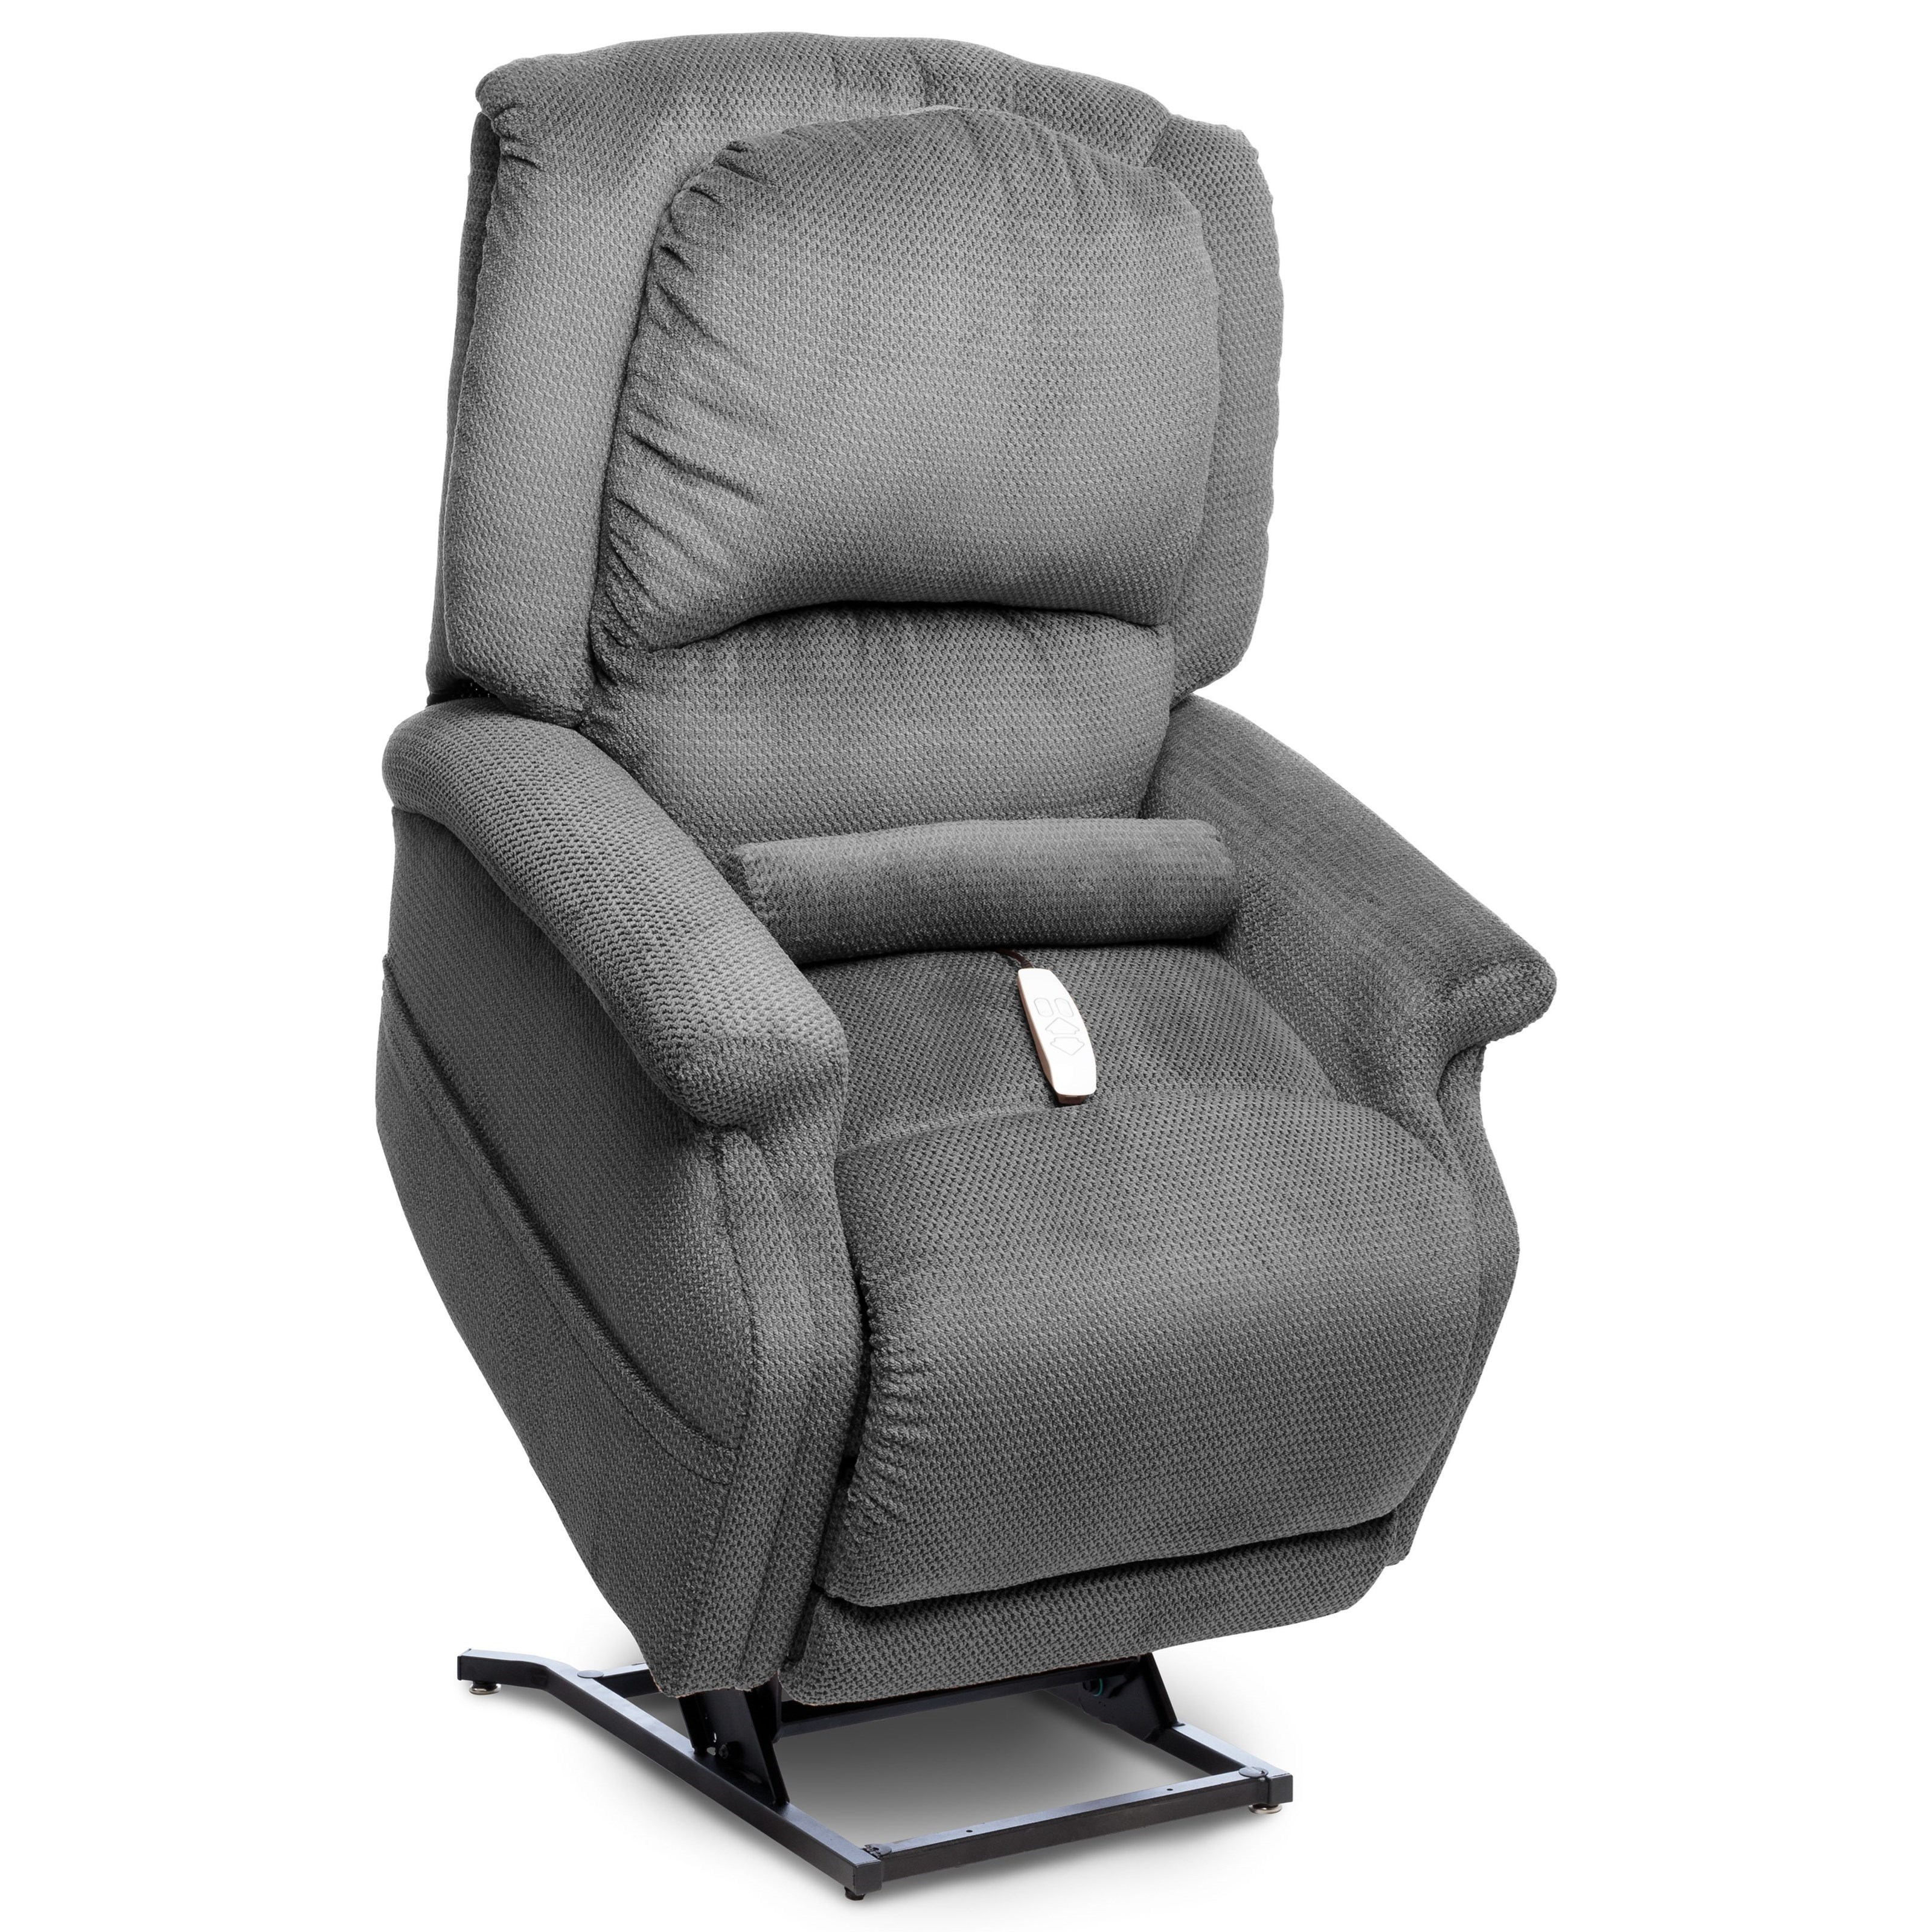 Lift Chairs Stardust Zero Gravity Chaise Lounger by Windermere Motion at Dunk & Bright Furniture